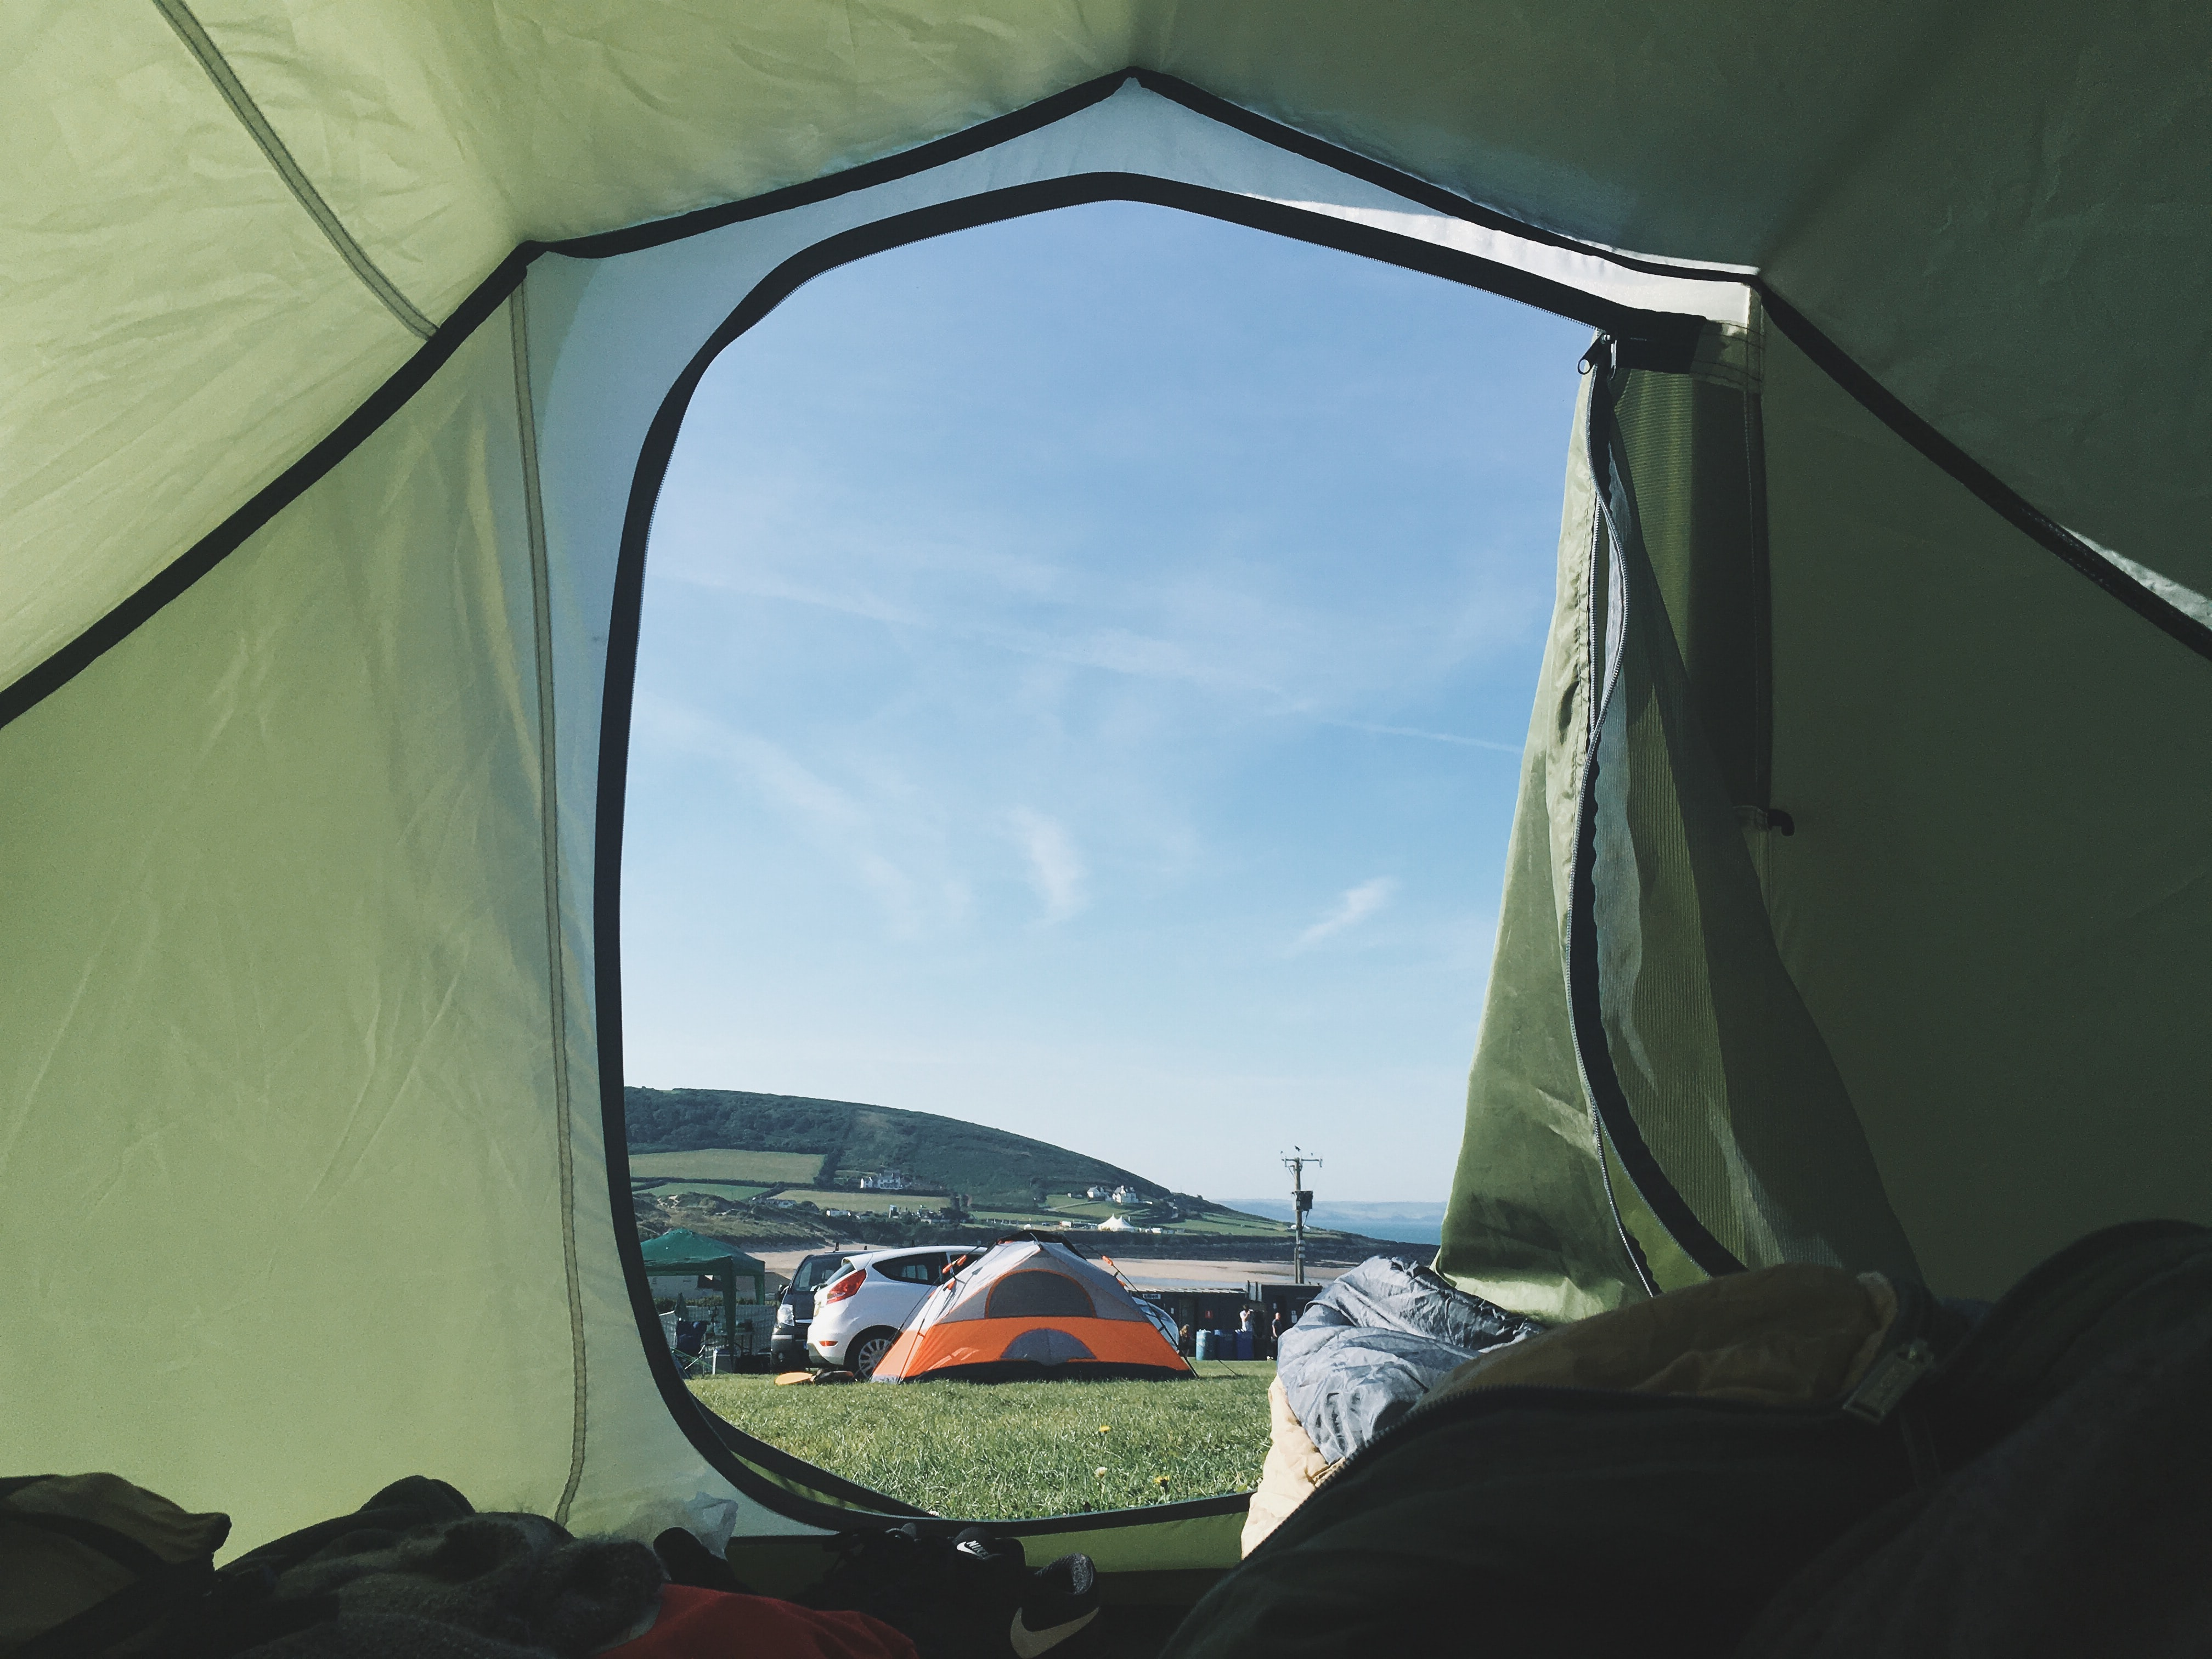 The view of a campsite and clear blue sky from inside of a green tent